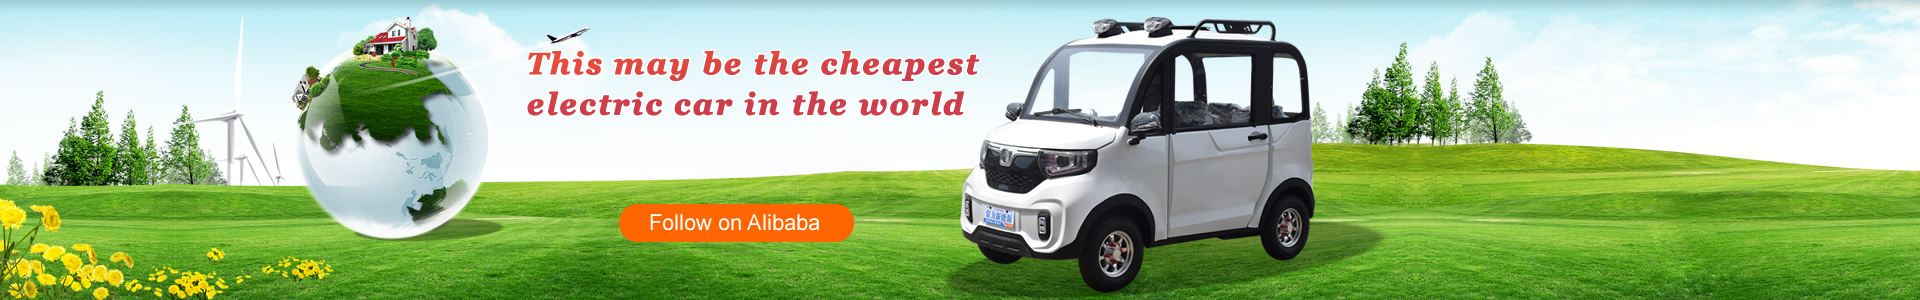 This may be the cheapest electric car in the world.